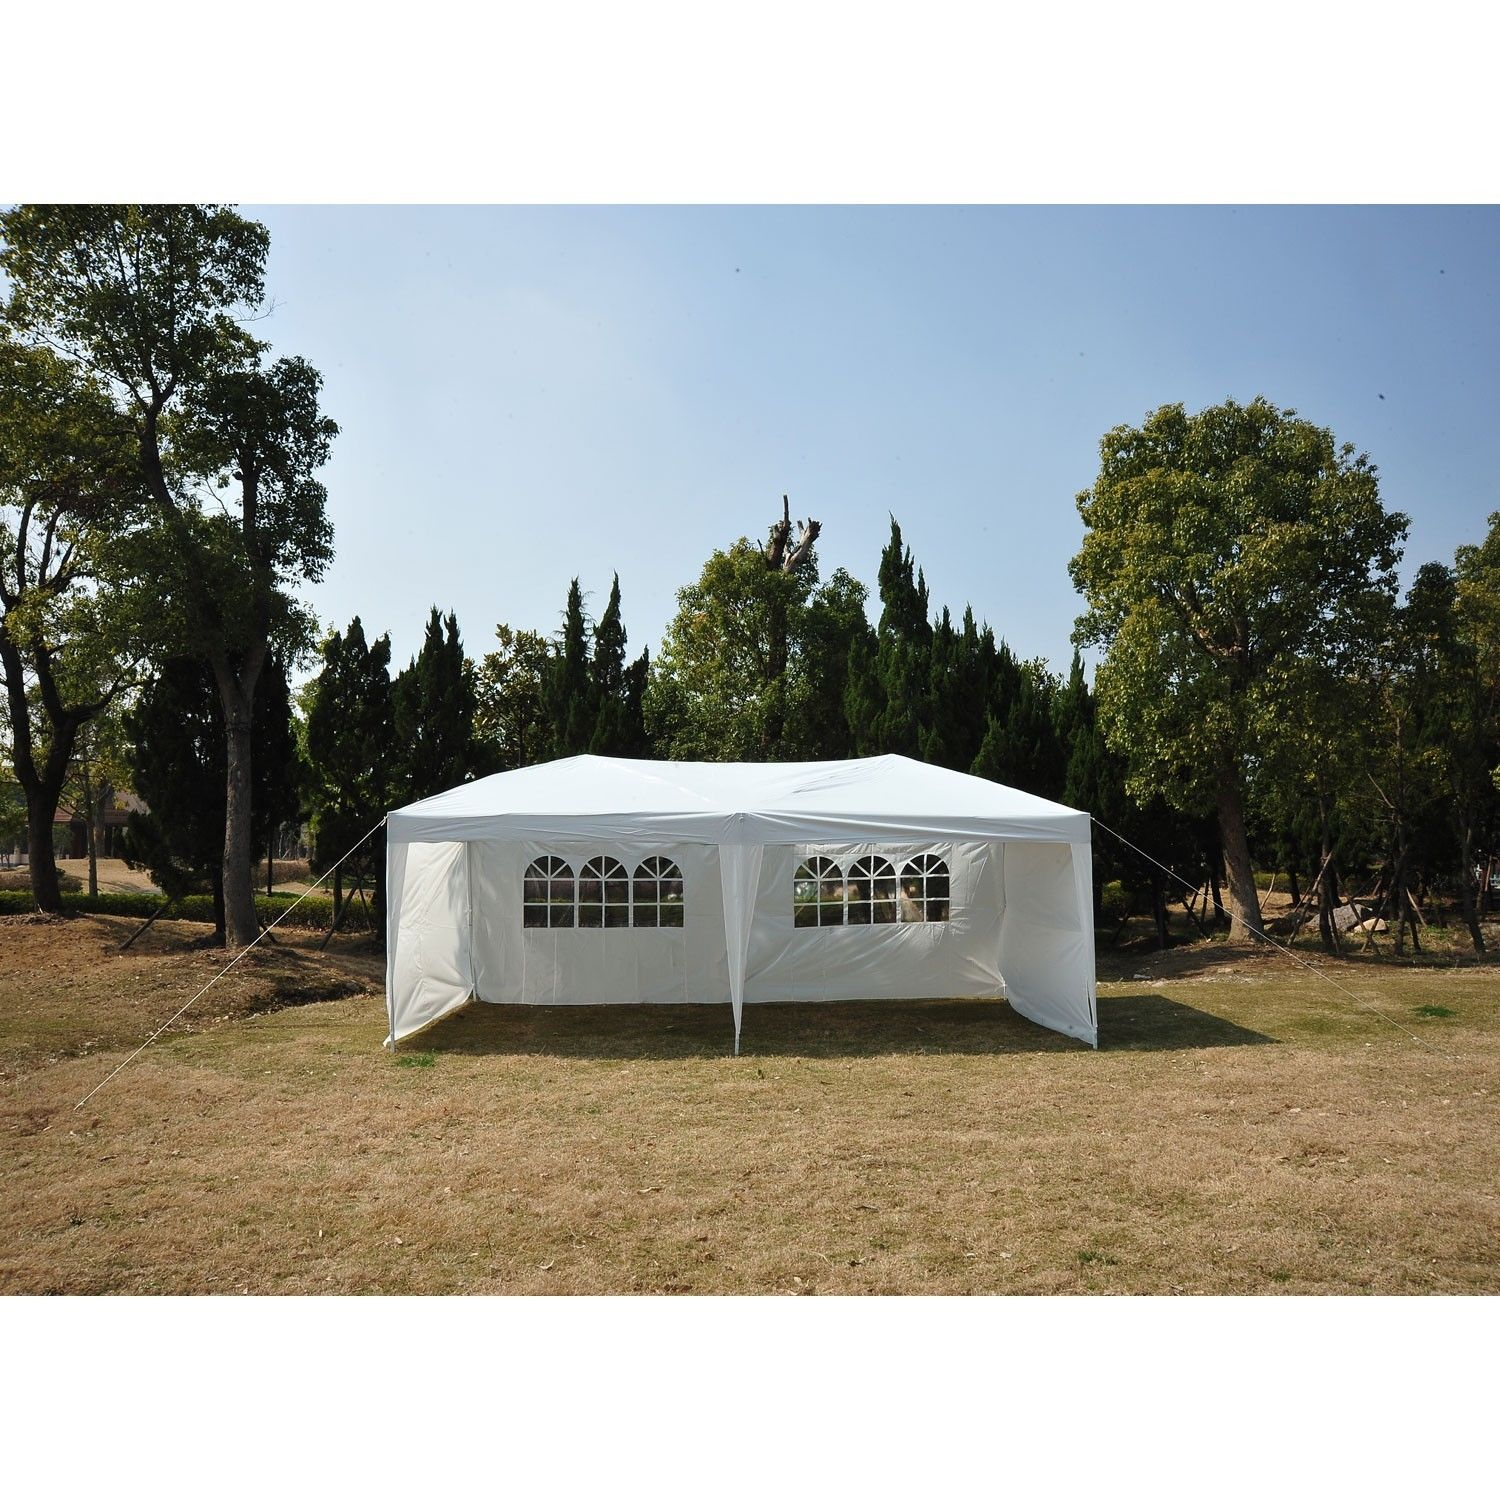 10 x 20 Pop Up Tent 4 Wall White  sc 1 st  Wholesale Event Tents & 10 x 20 Pop Up Tent Canopy w/ 4 Sidewalls - 5 Colors -